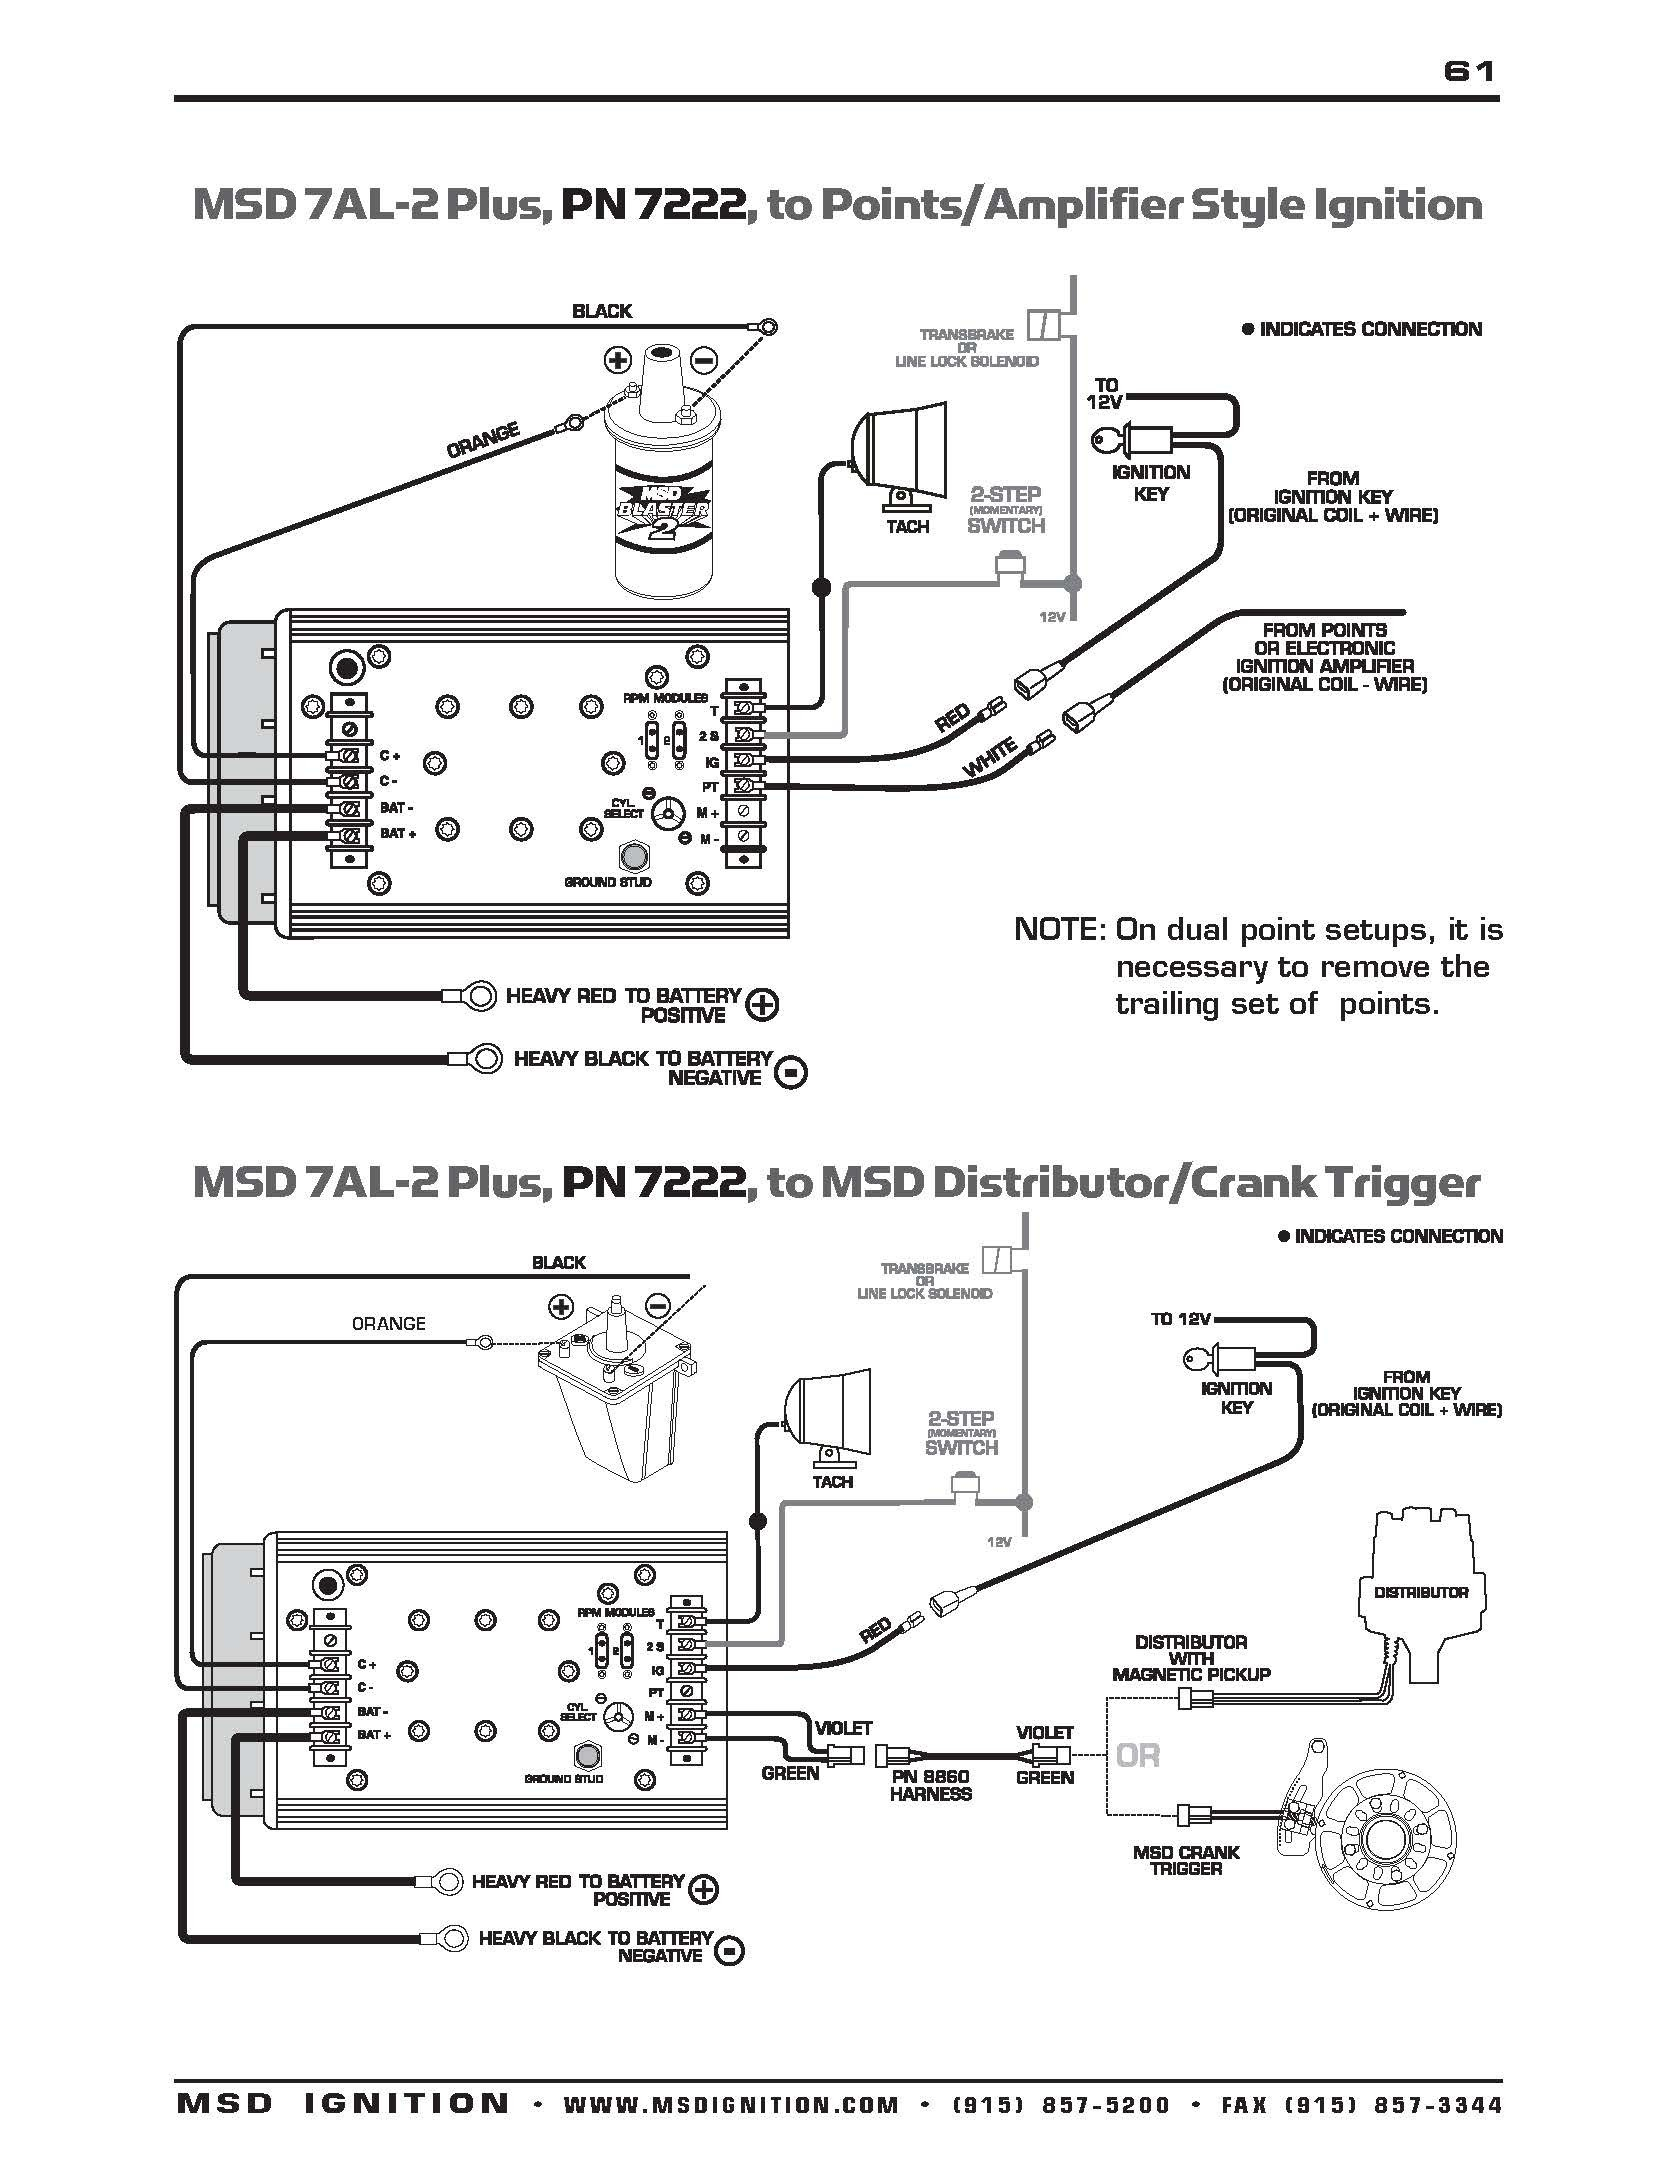 Amazing Msd 7al 2 Wiring Diagram s Ideas And